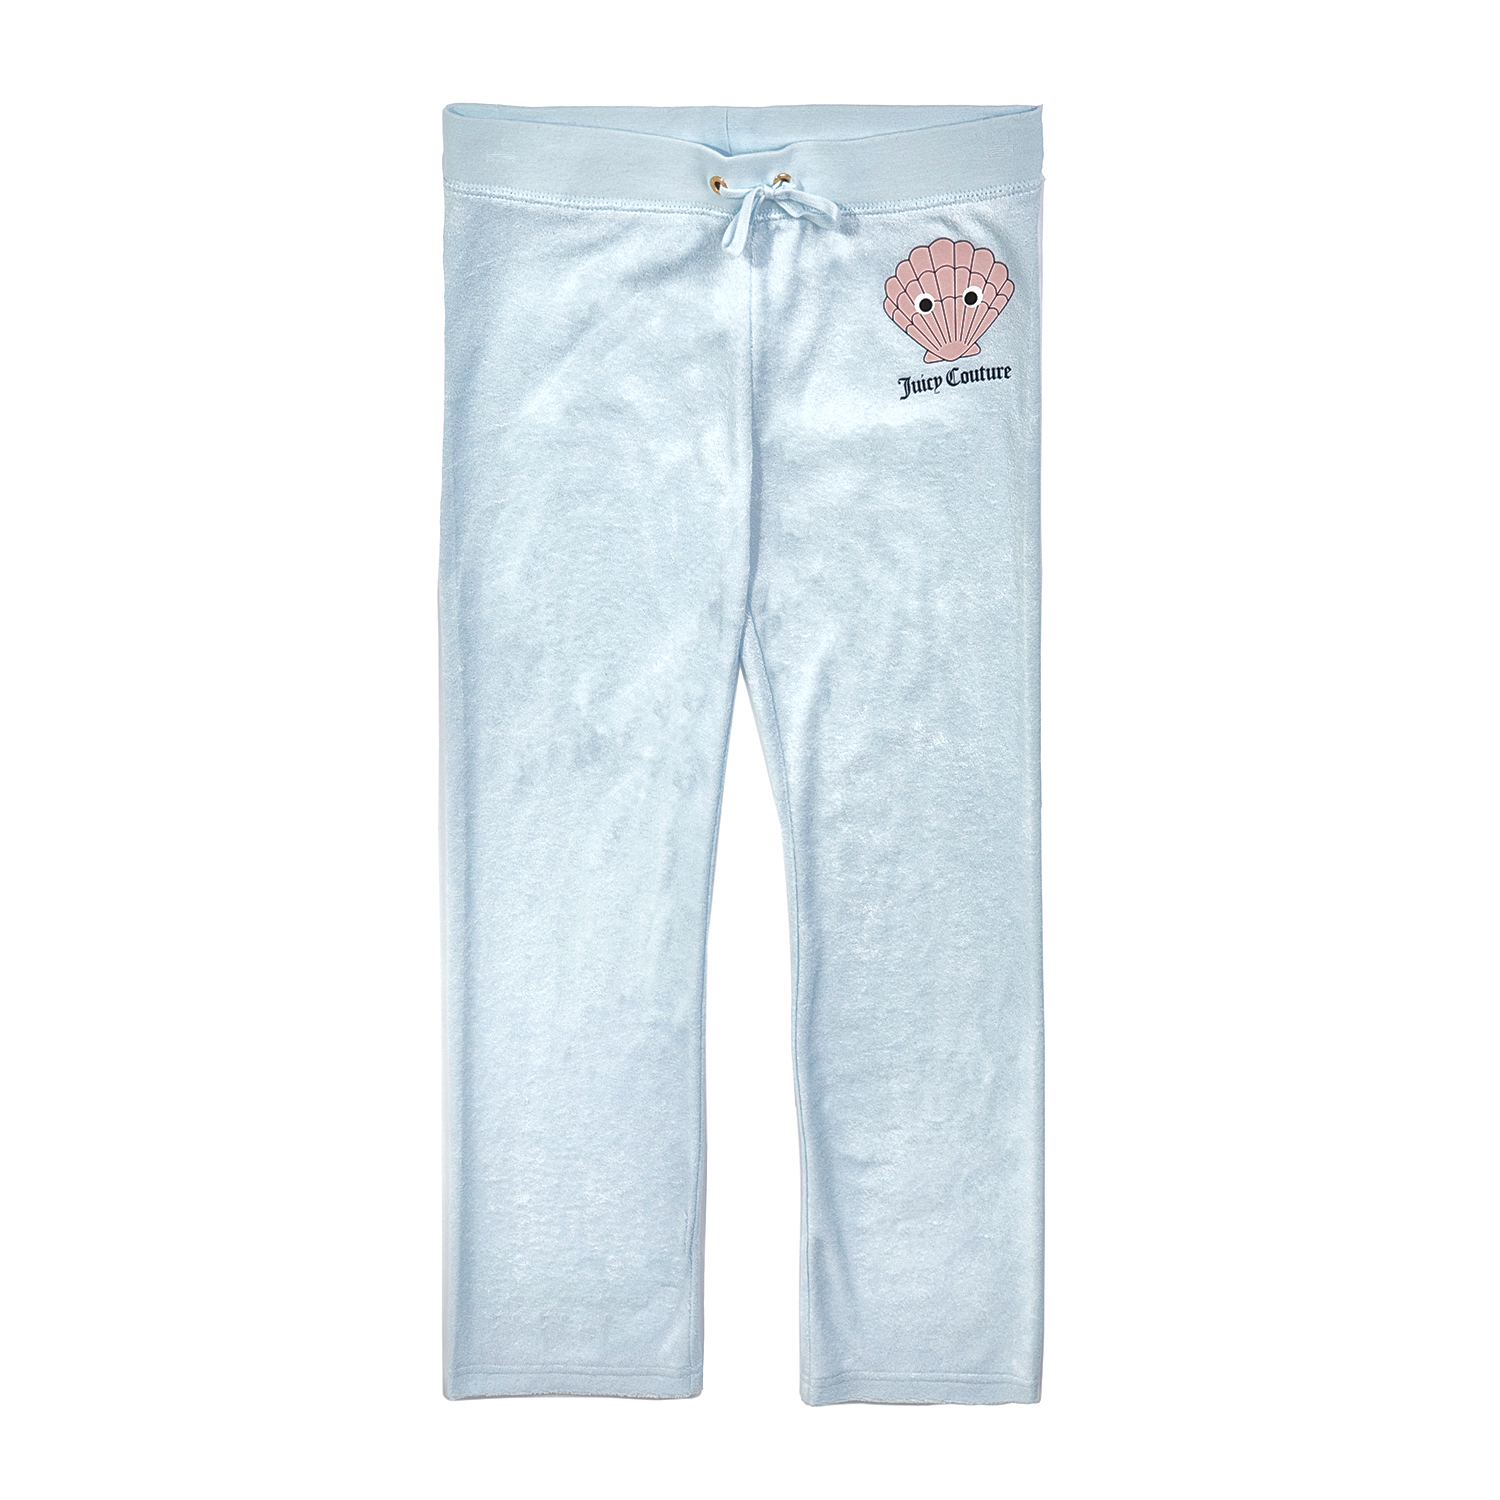 3ded3855510 JUICY COUTURE KIDS - Κοριτσίστικο παντελόνι φόρμας JUICY COUTURE MICROTERRY  SAMMY SEASHELL γαλάζιο